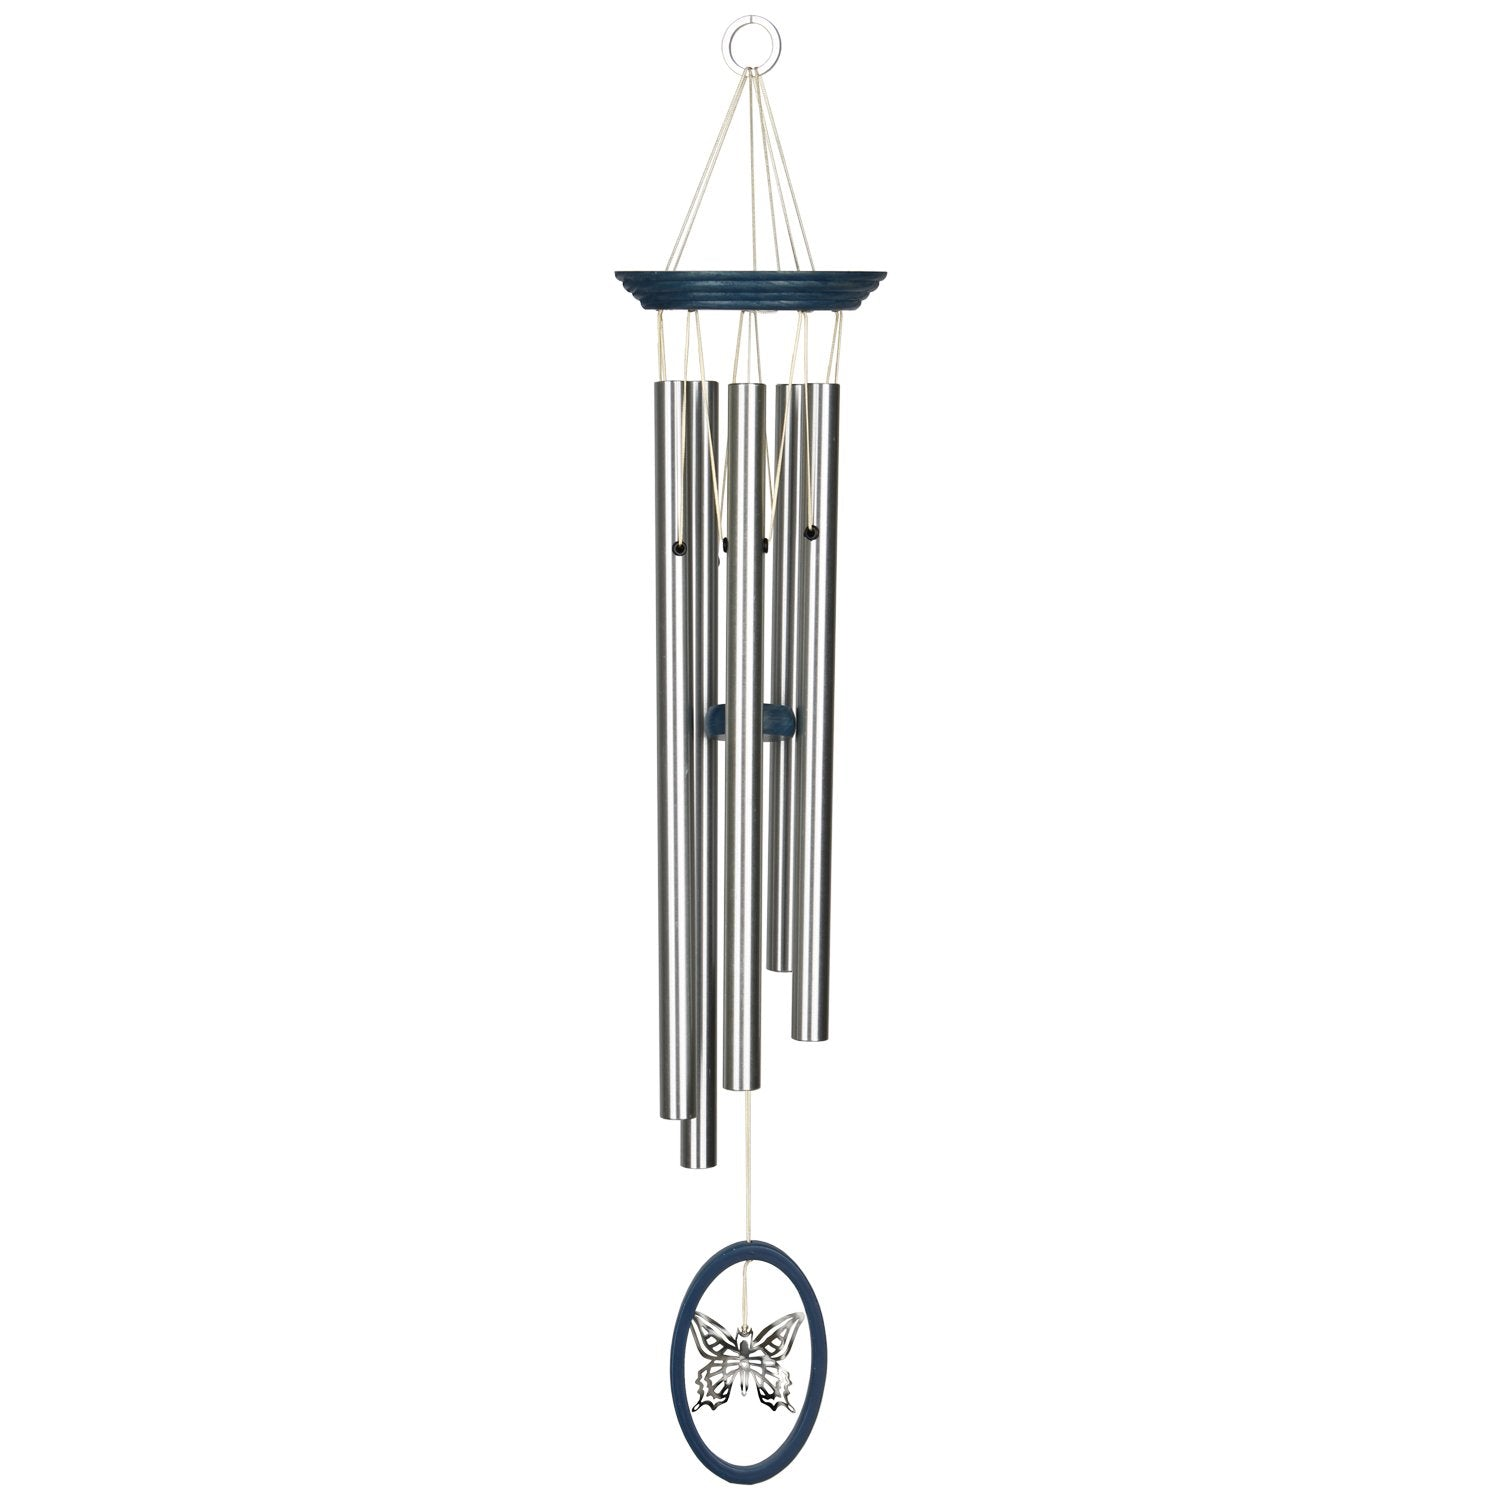 Wind Fantasy Chime - Butterfly full product image